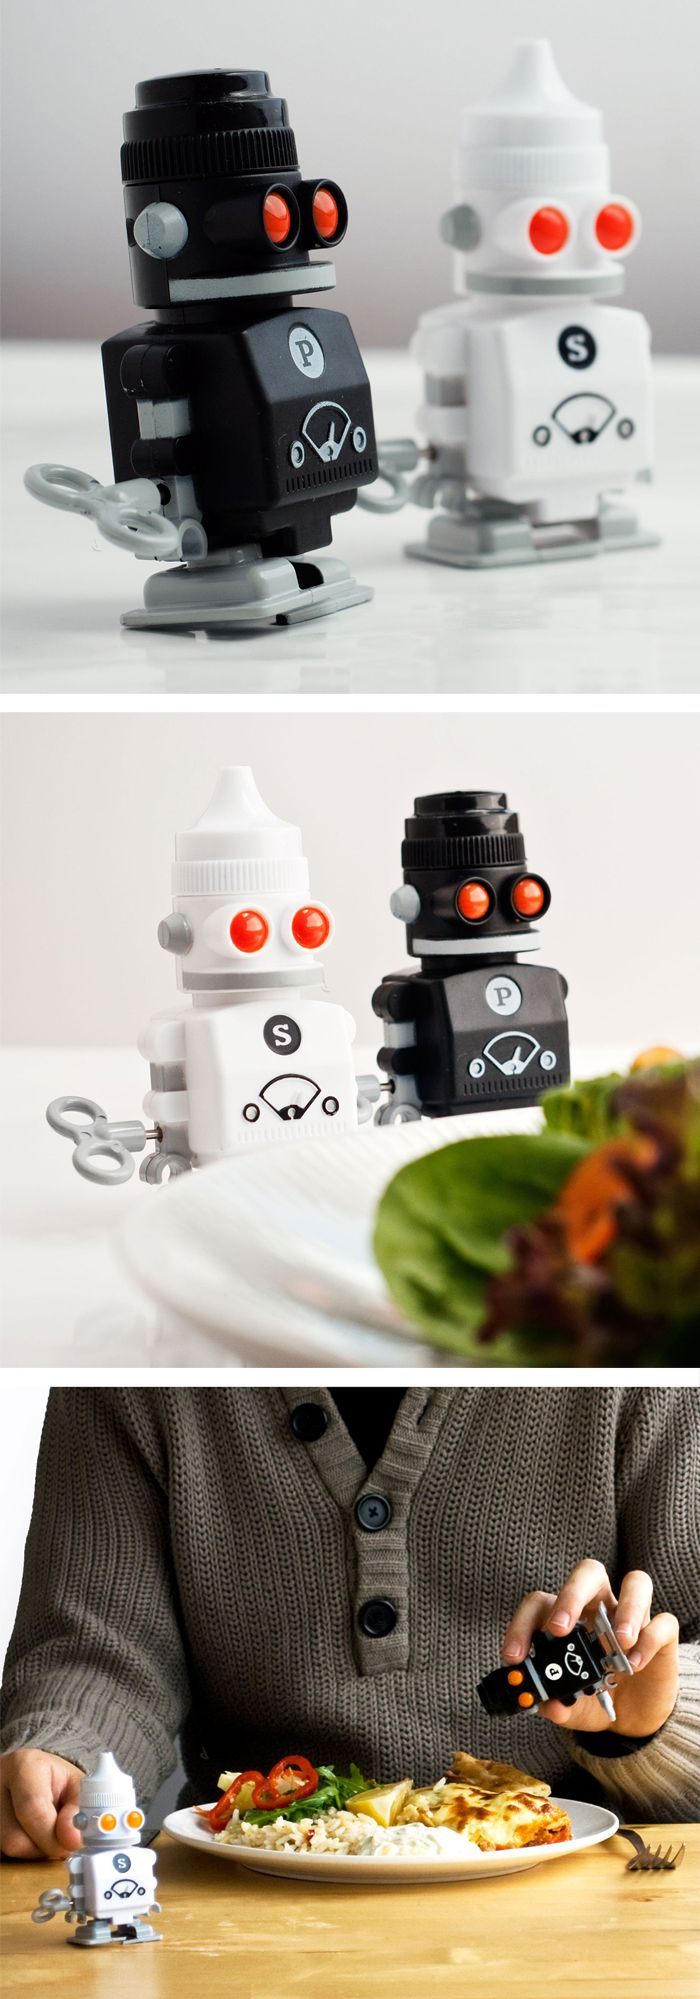 78 best images about interesting on pinterest around Salt and pepper robots